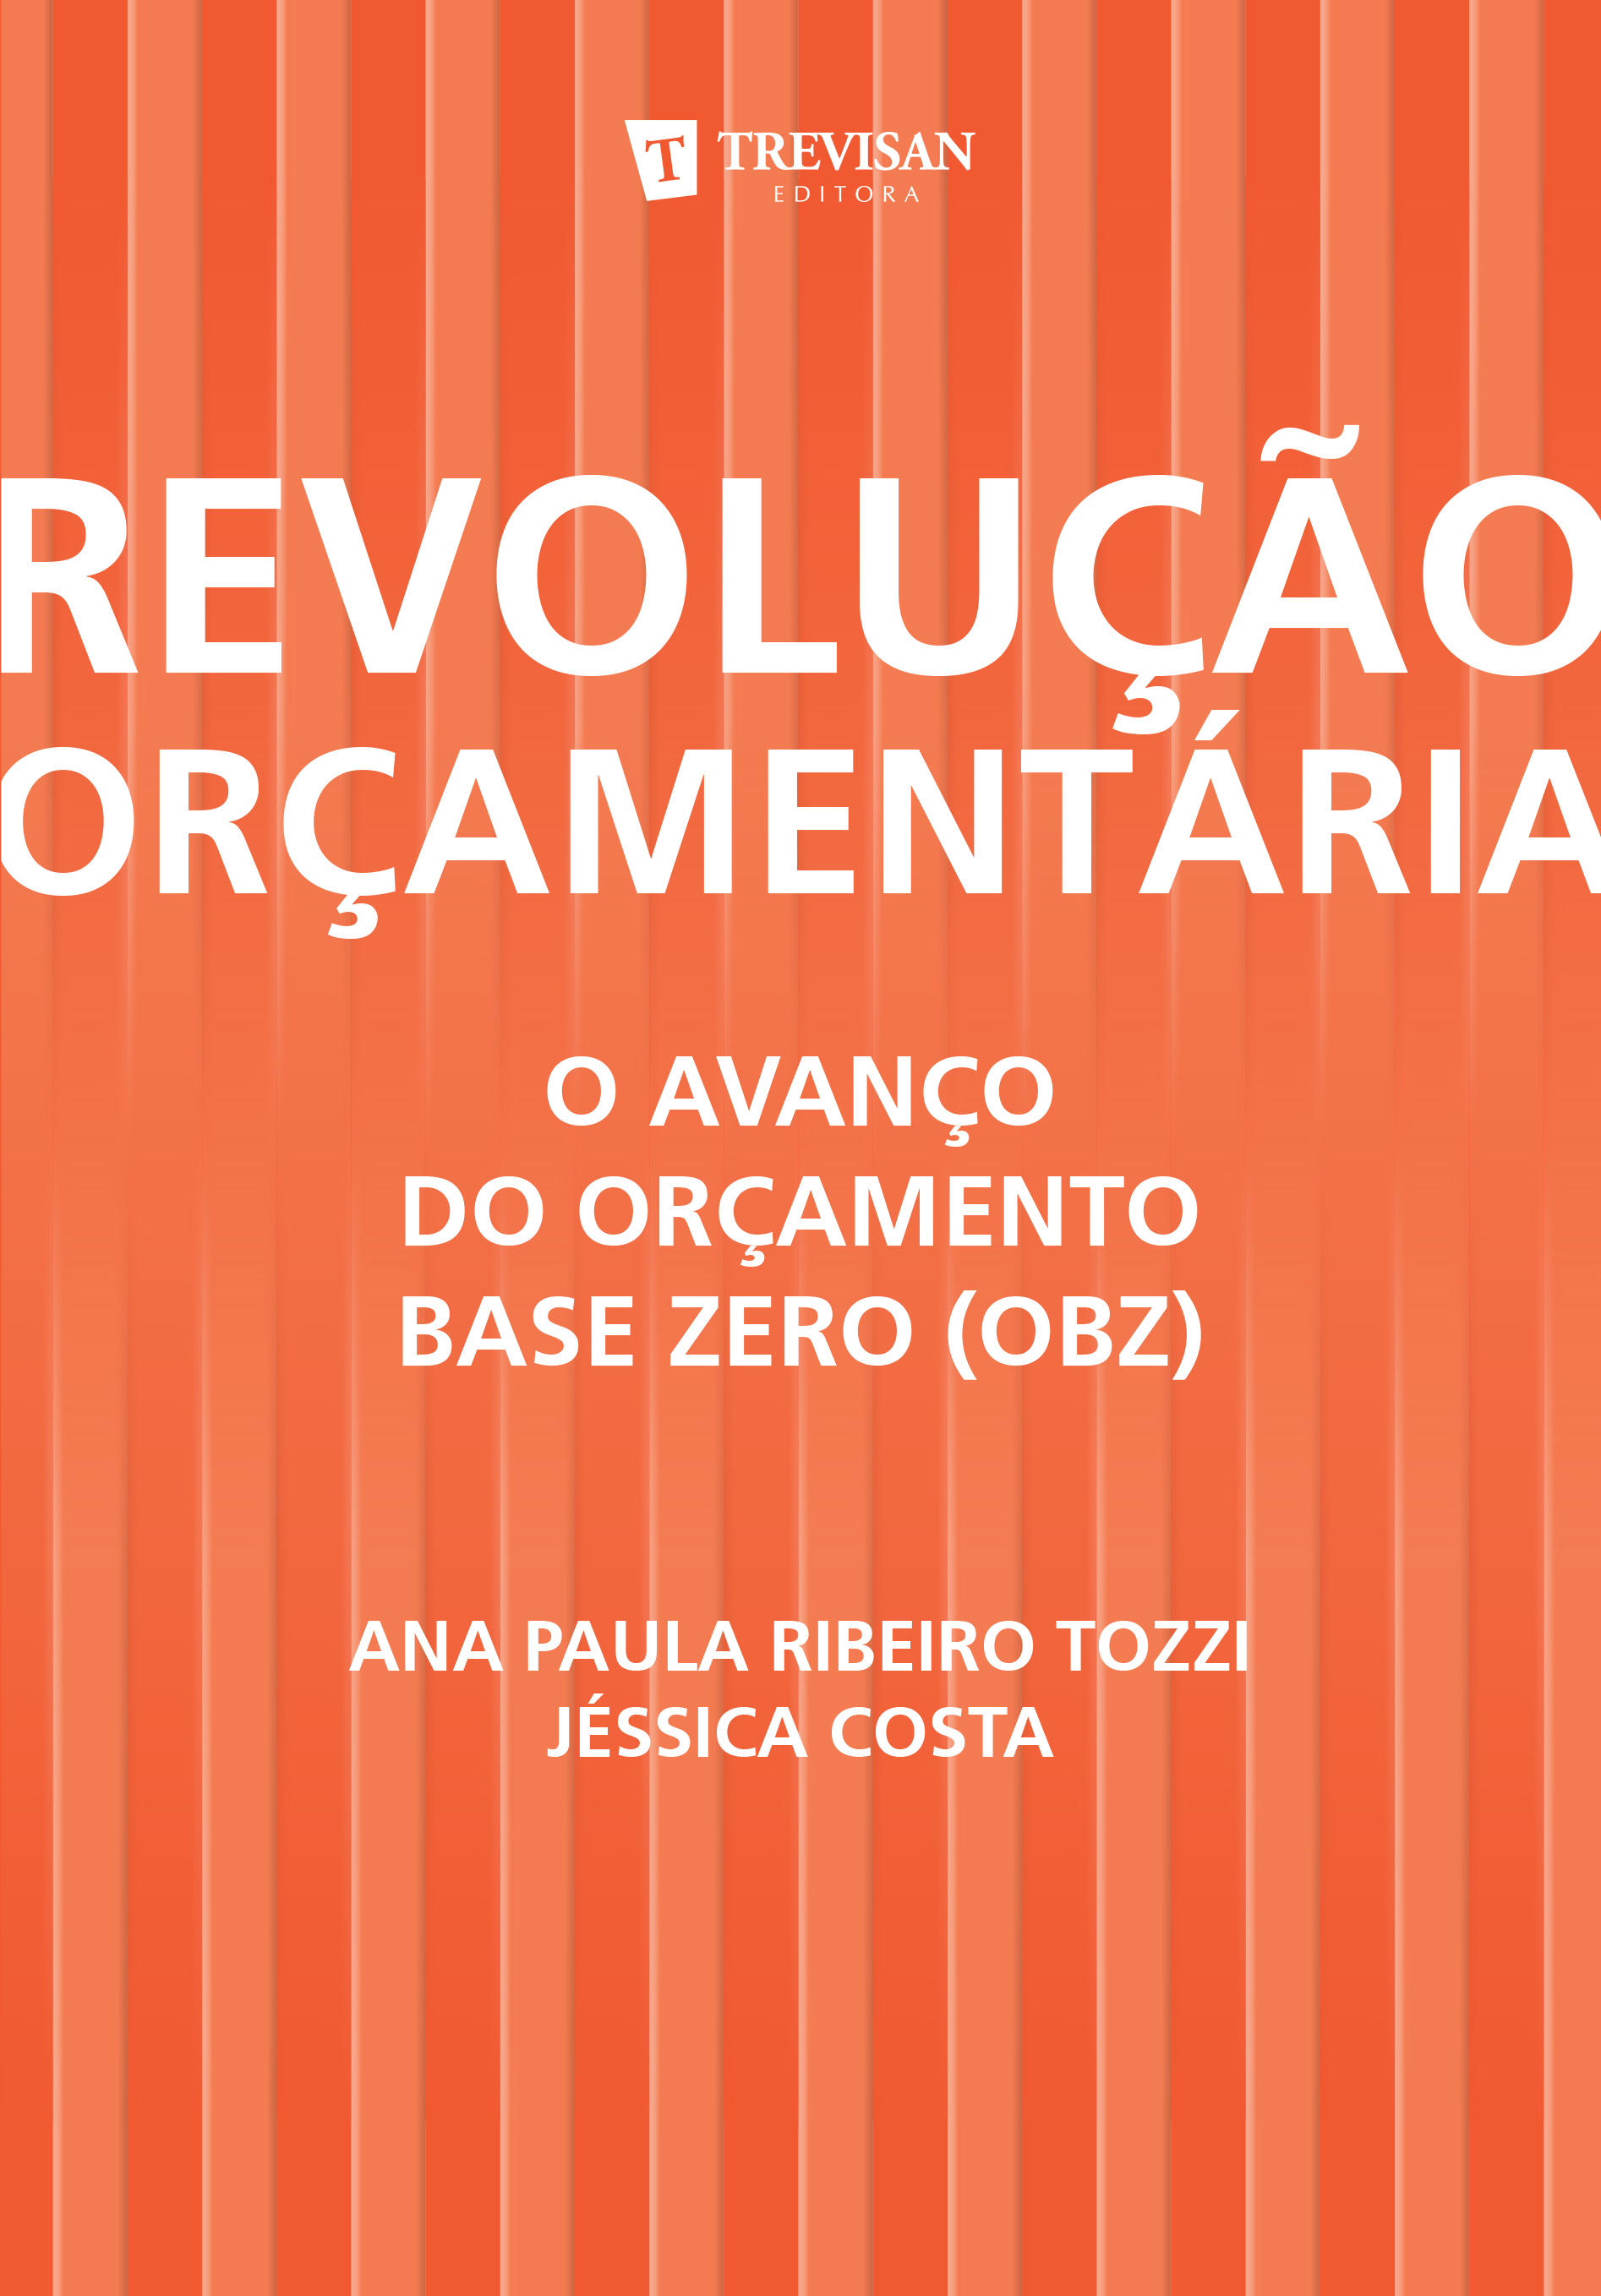 Revolução orçamentária - o avanço do orçamento base zero (OBZ)